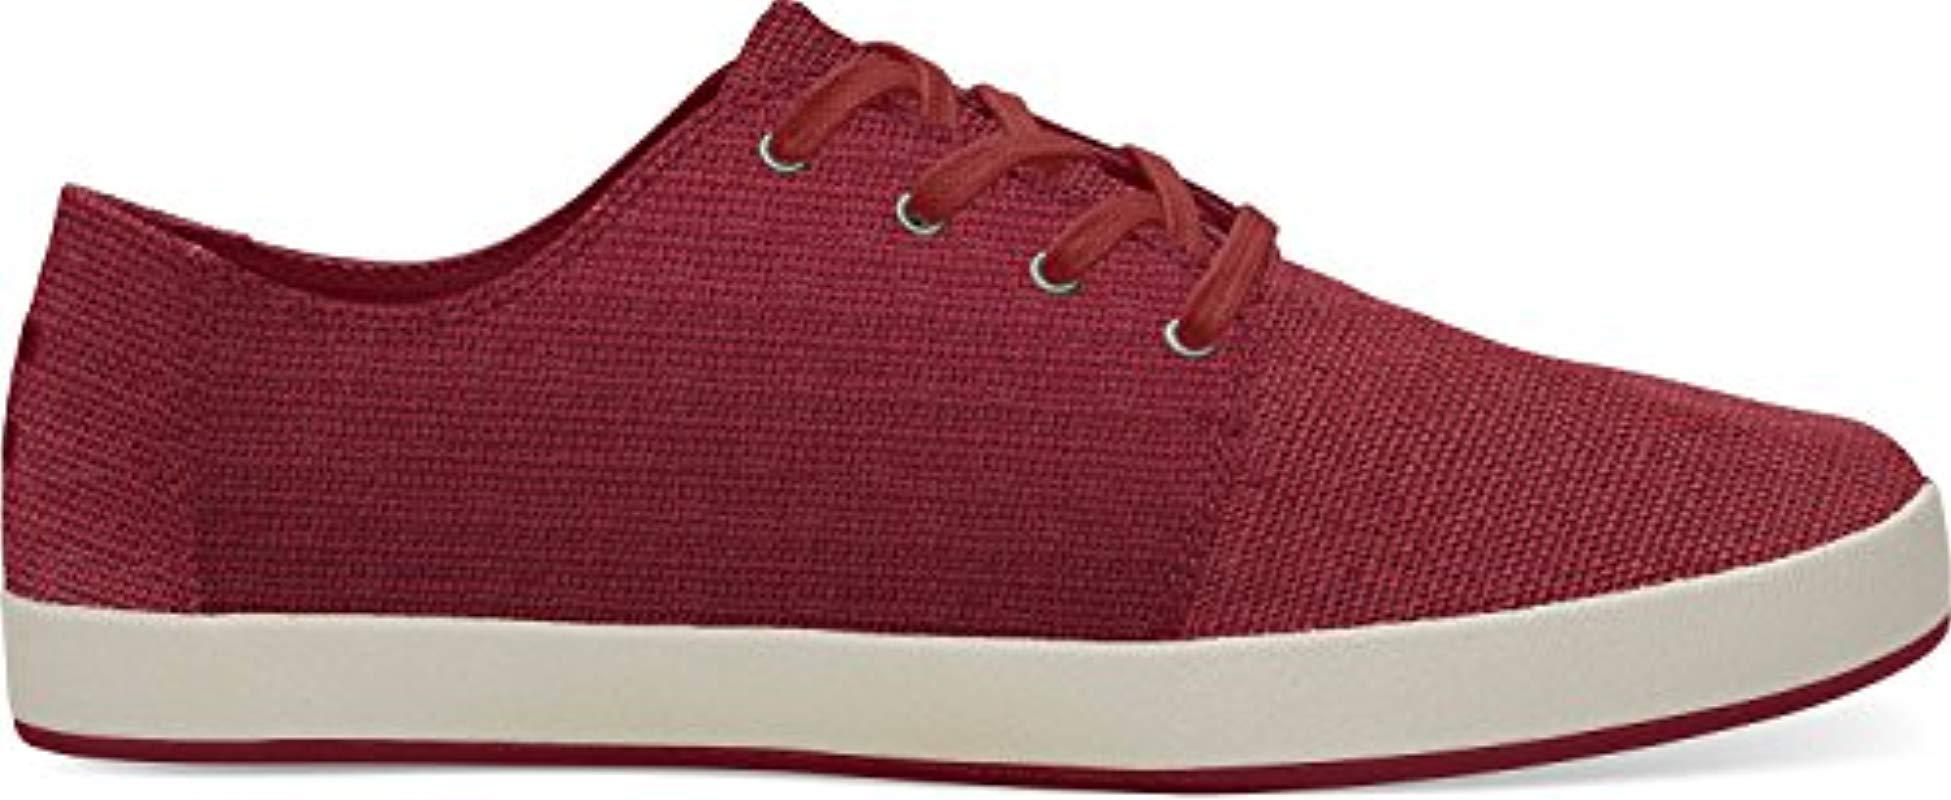 cdf95a1fb4 Lyst - Toms Classic Shoes in Red